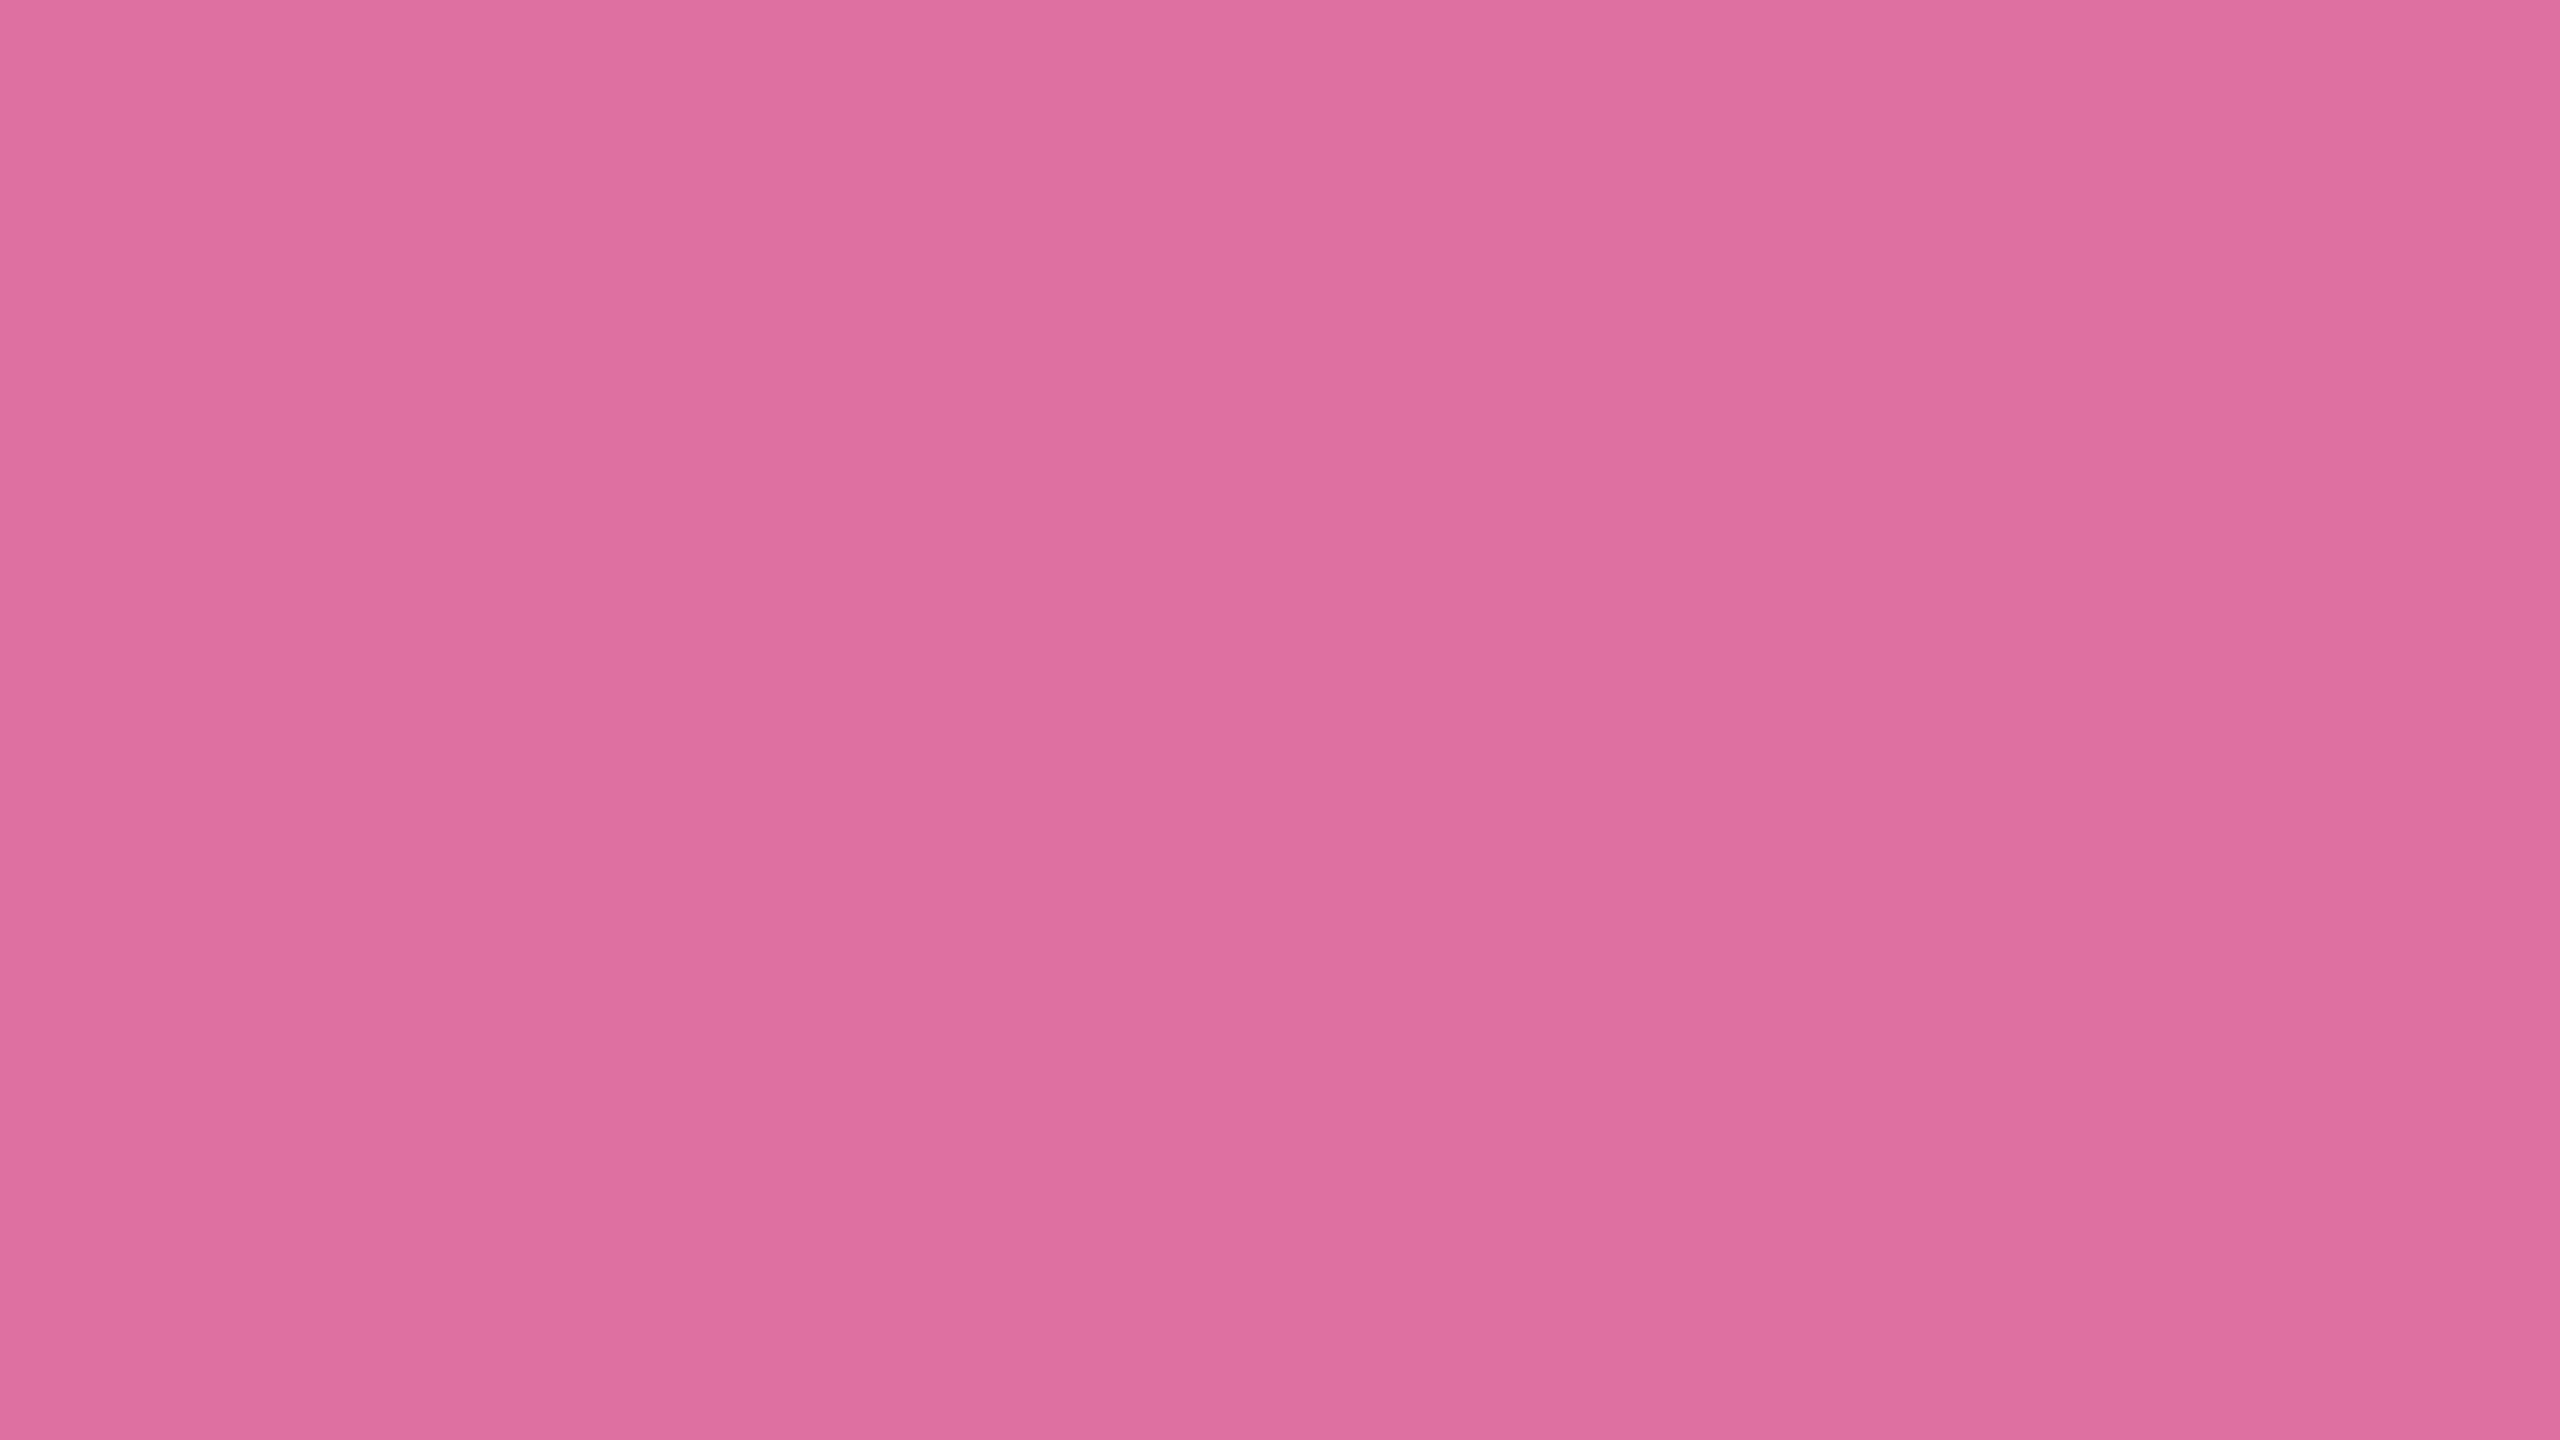 2560x1440 Thulian Pink Solid Color Background